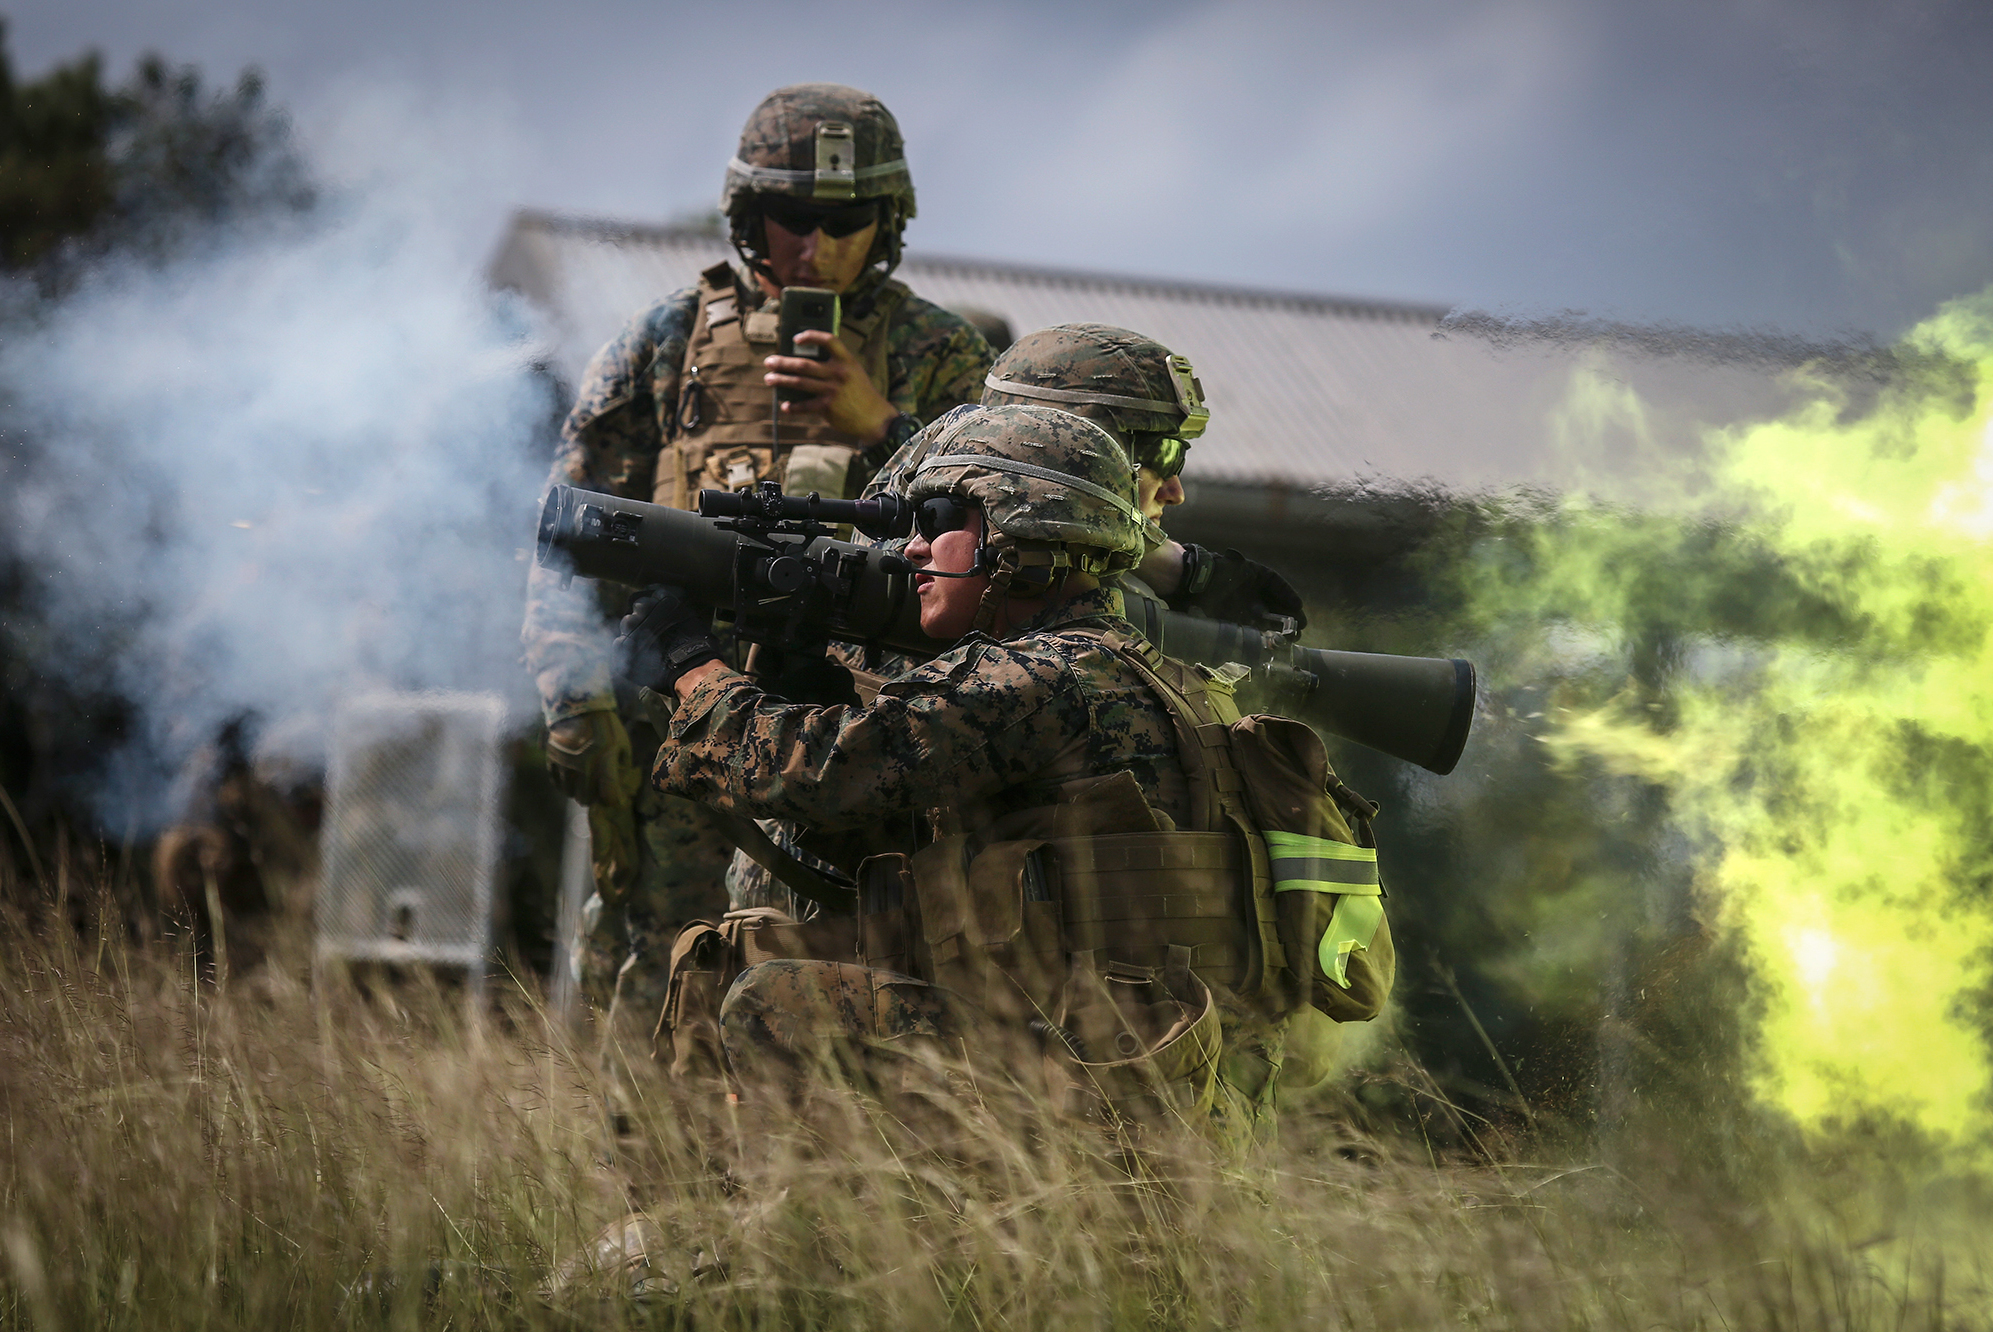 U.S. Marines fire the Carl Gustav rocket system during live-fire training last October. With each firing, the shooter's brain is exposed to pulses of high pressure air emanating from the explosion that travel faster than the speed of sound.